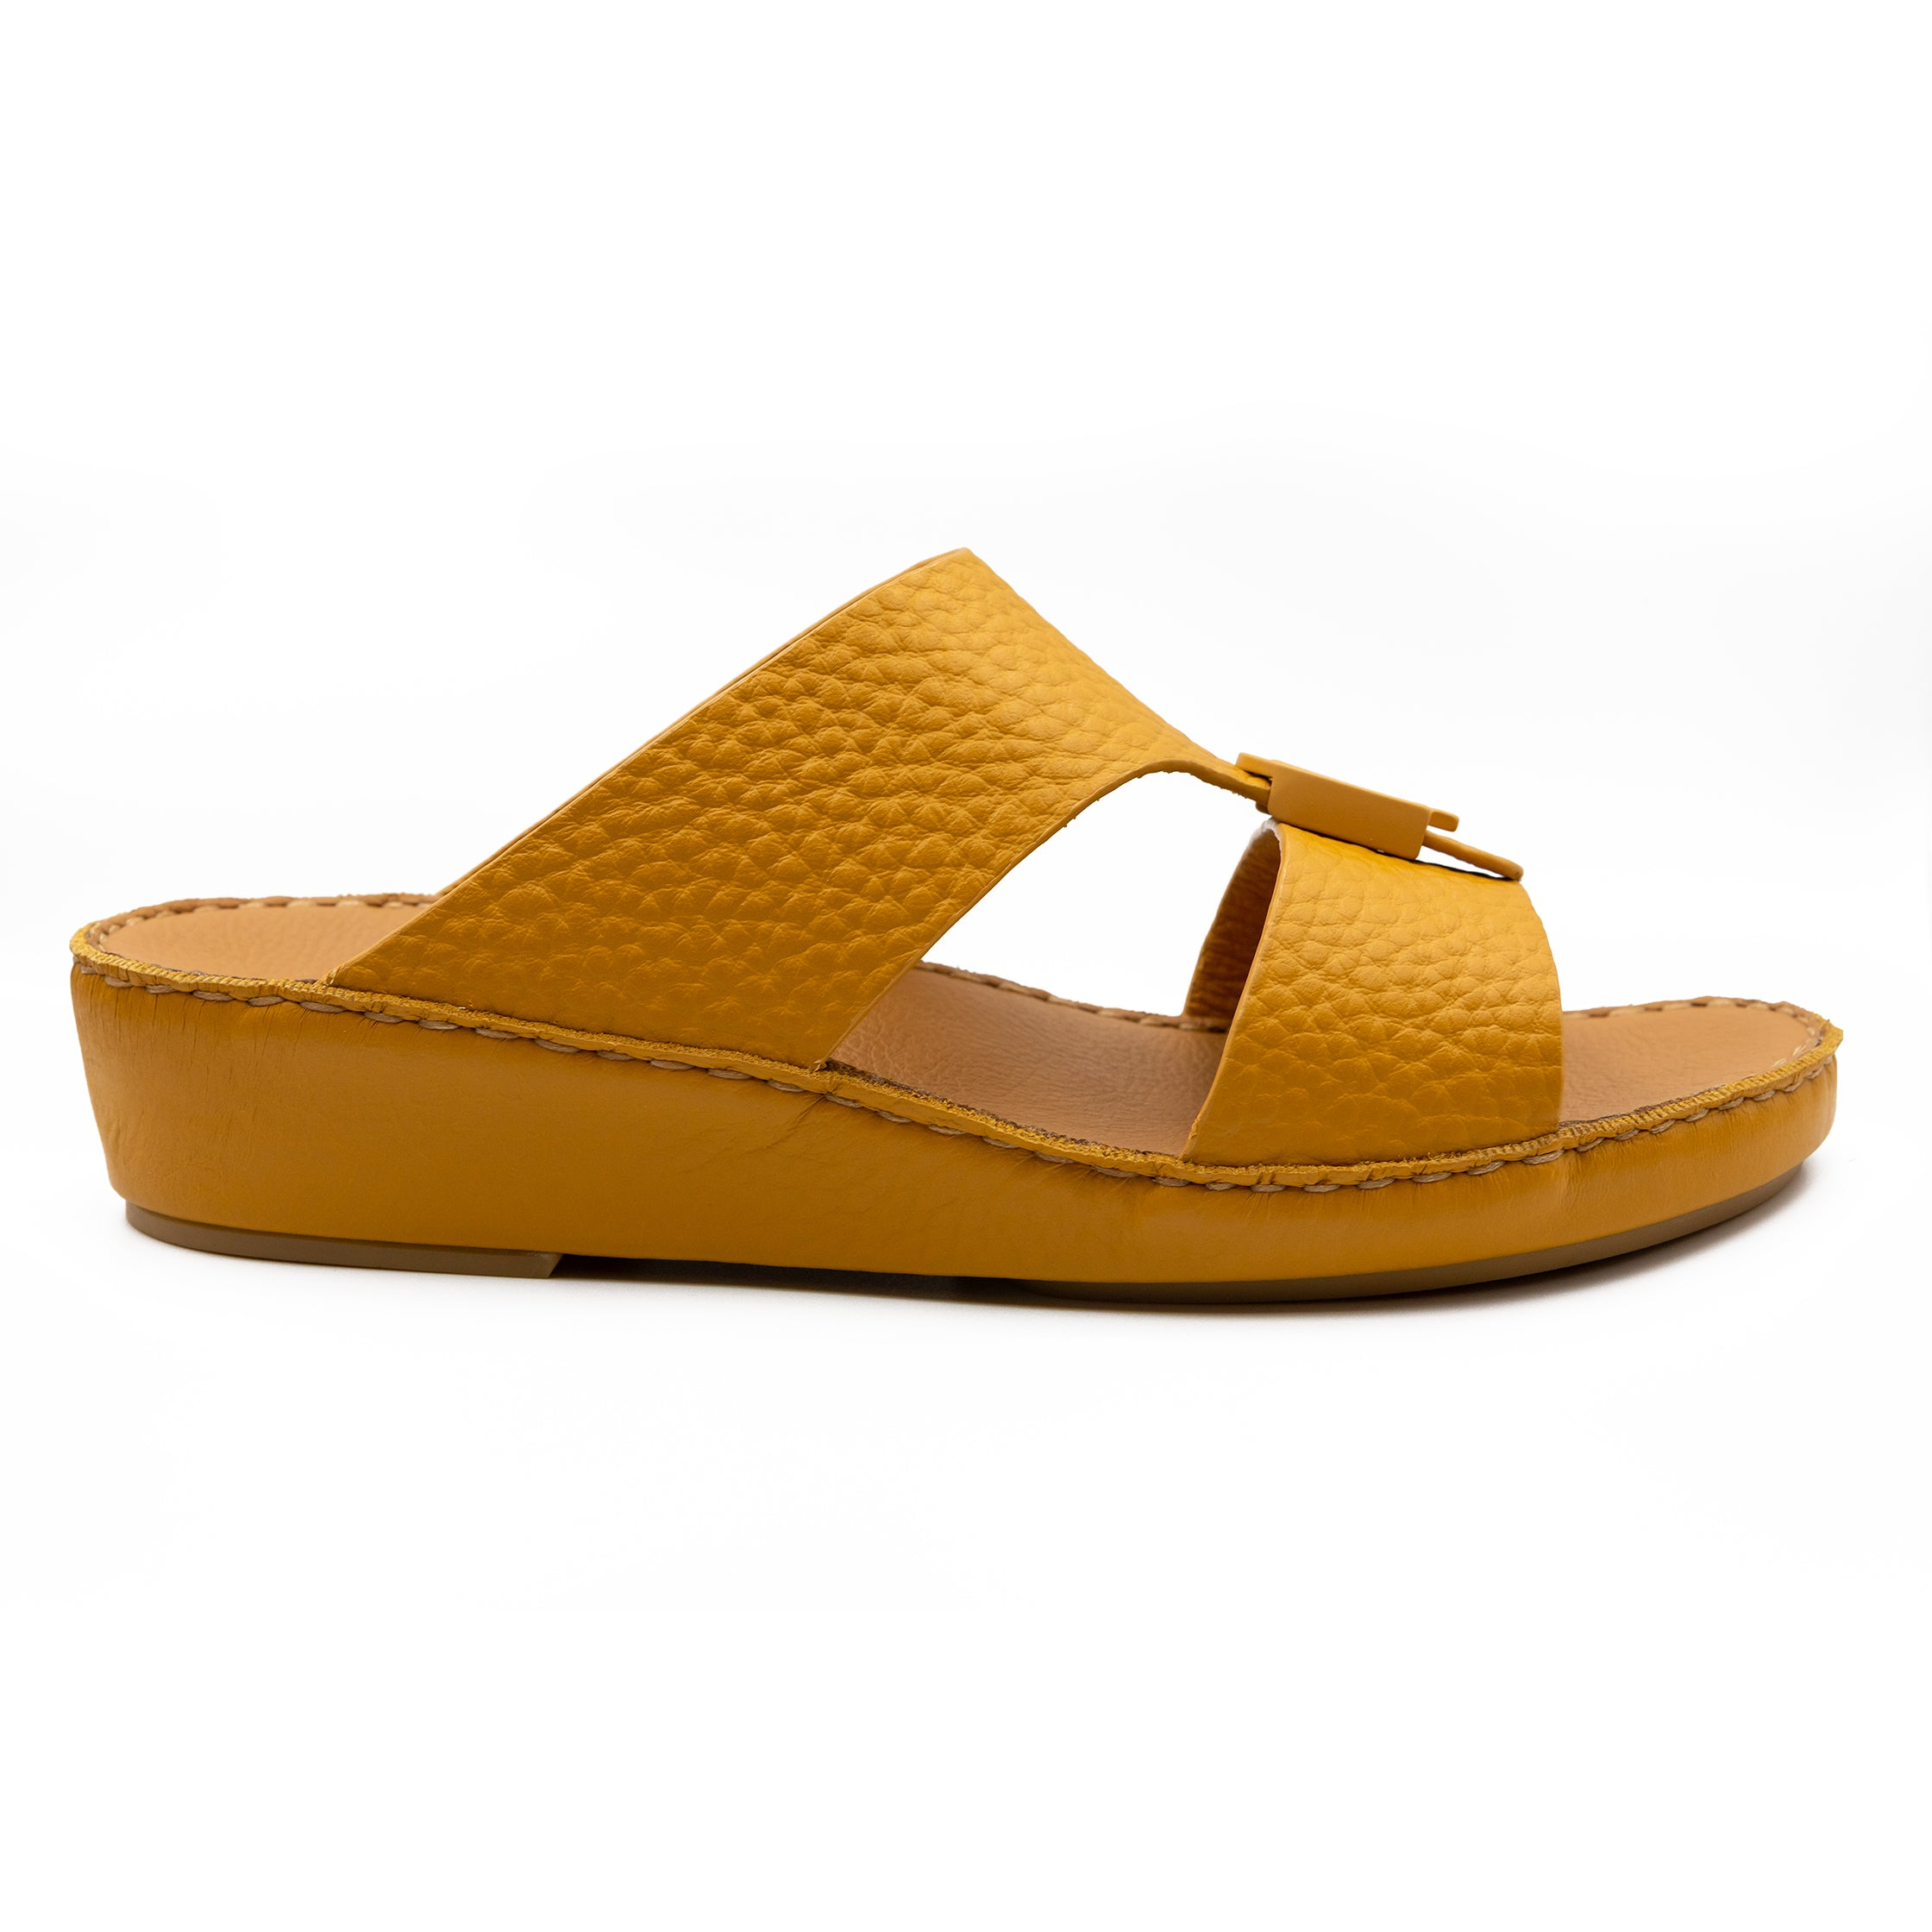 square, stiched, Sandals, Arabic, Sandal, Ramadan, Collection, Accessories